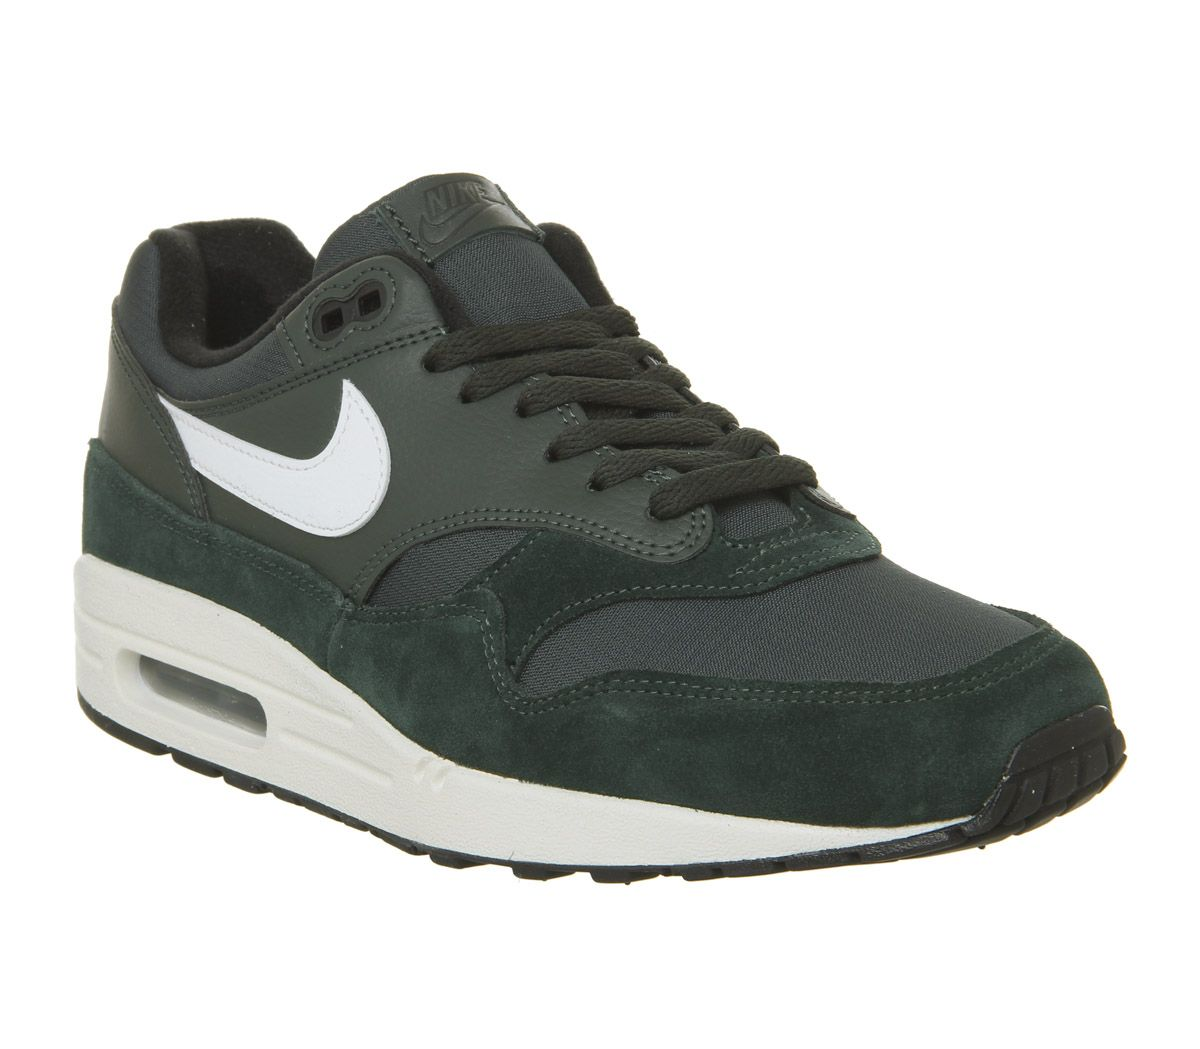 d0b8061e57 Nike Air Max 1 Trainers Outdoor Green Sail Black - His trainers